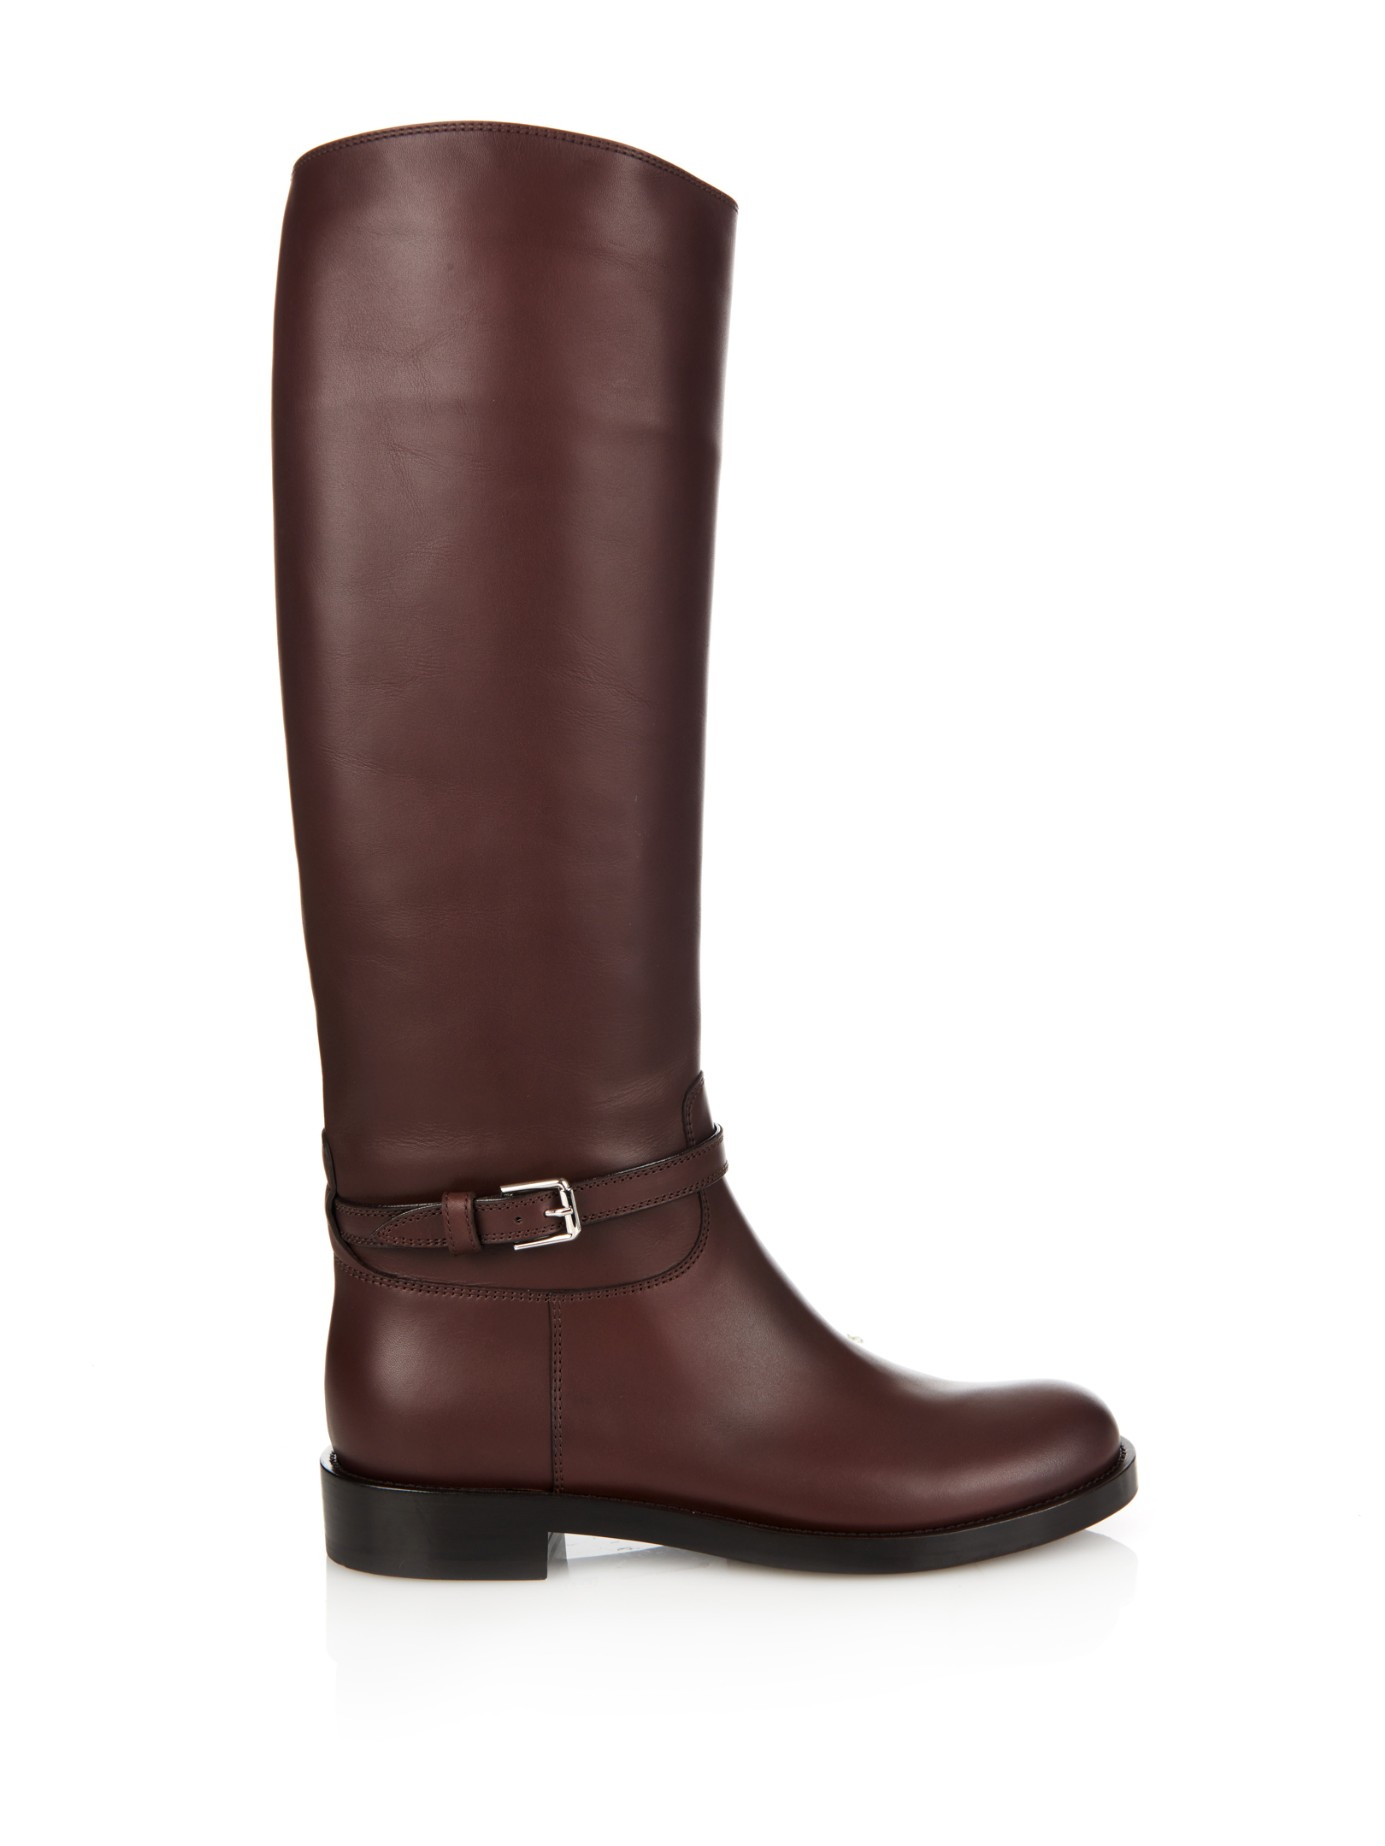 lyst gianvito rossi riding leather boots in brown. Black Bedroom Furniture Sets. Home Design Ideas